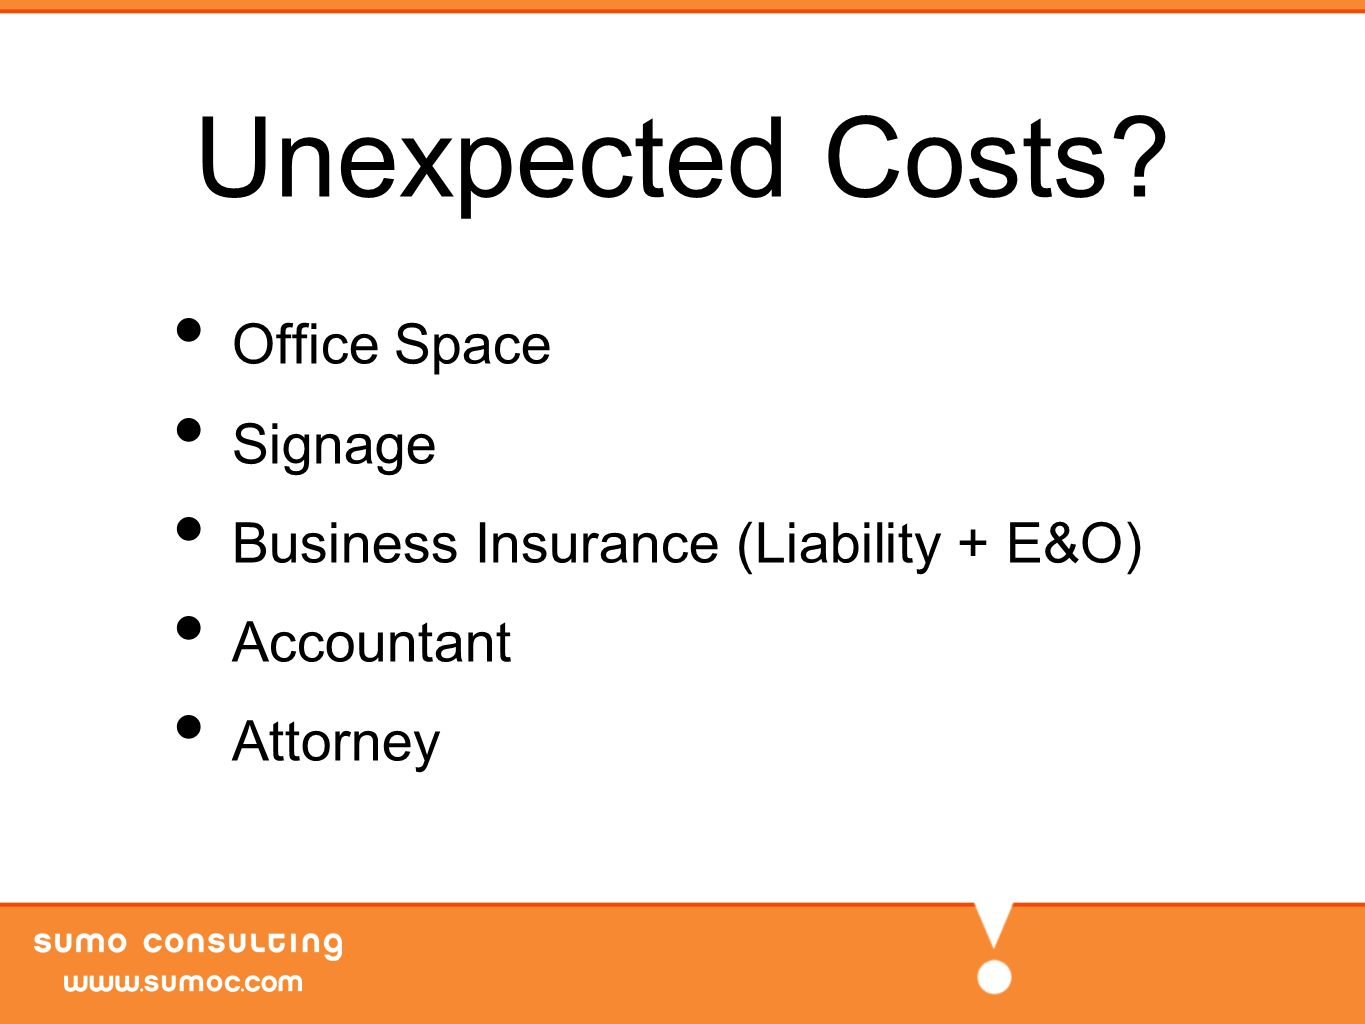 Unexpected Costs Office Space Signage Business Insurance (Liability + E&O) Accountant Attorney